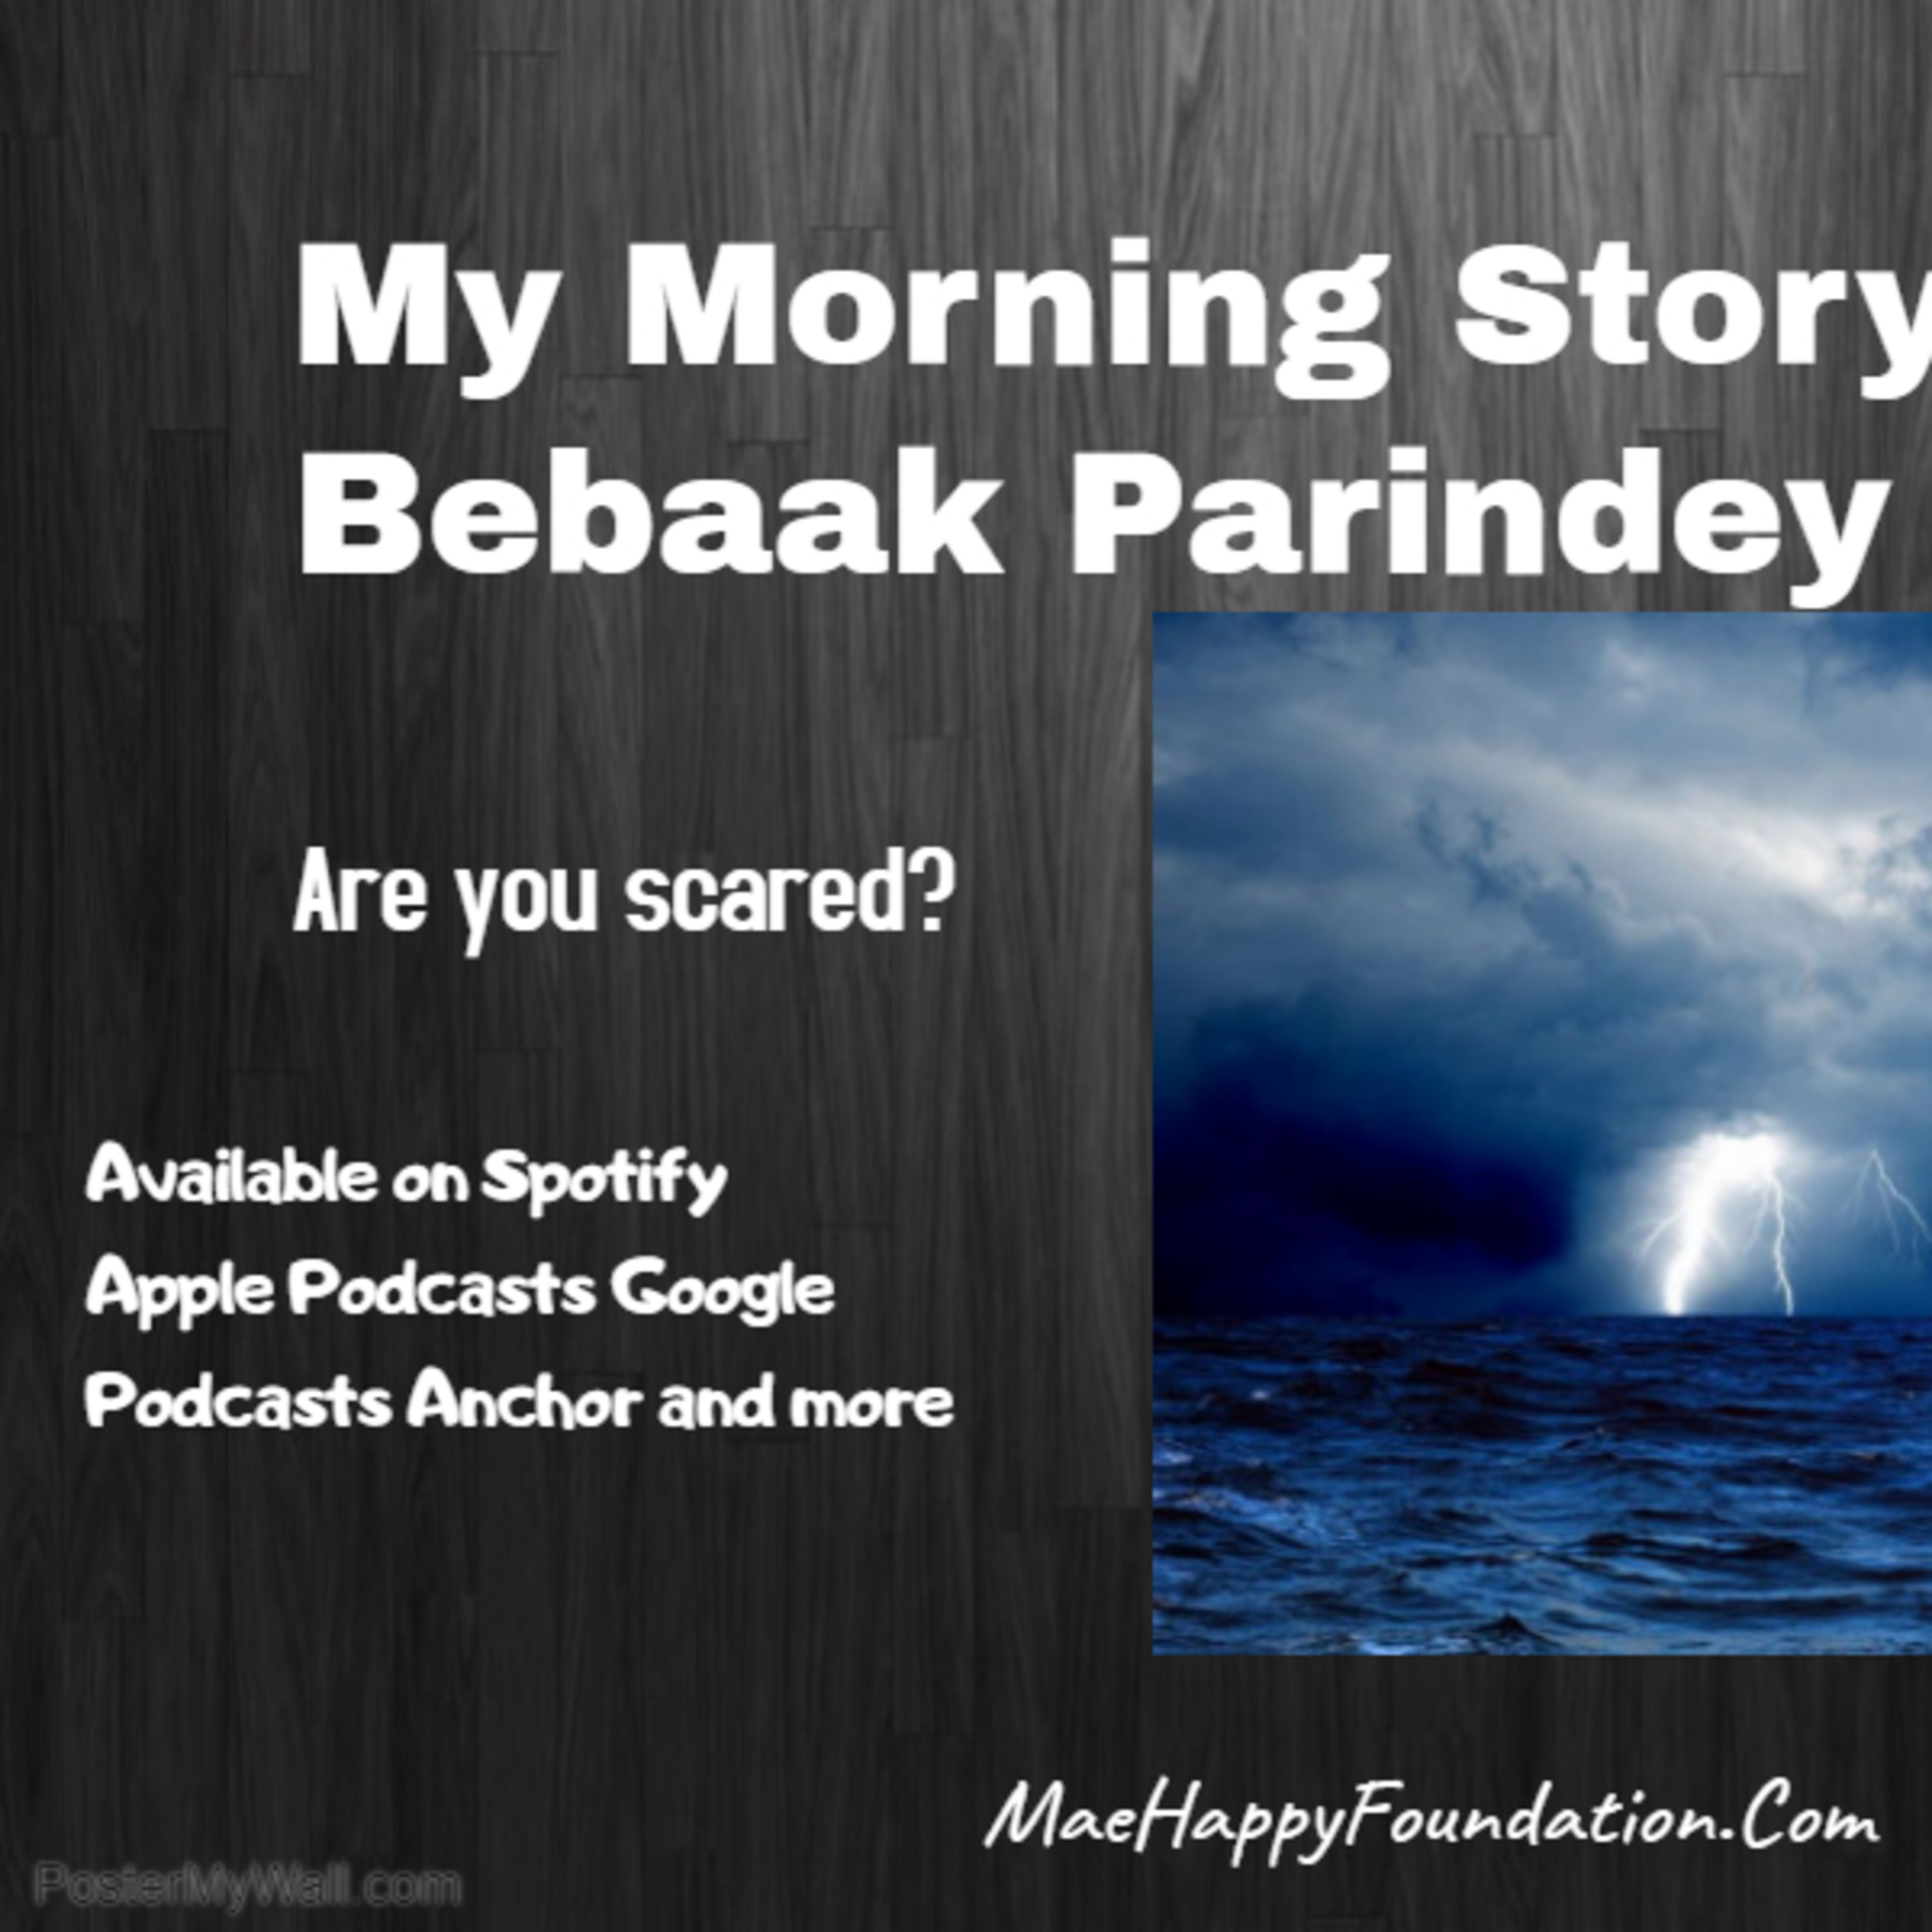 My Morning Story: Are you scared? Radio Bebaak Parindey